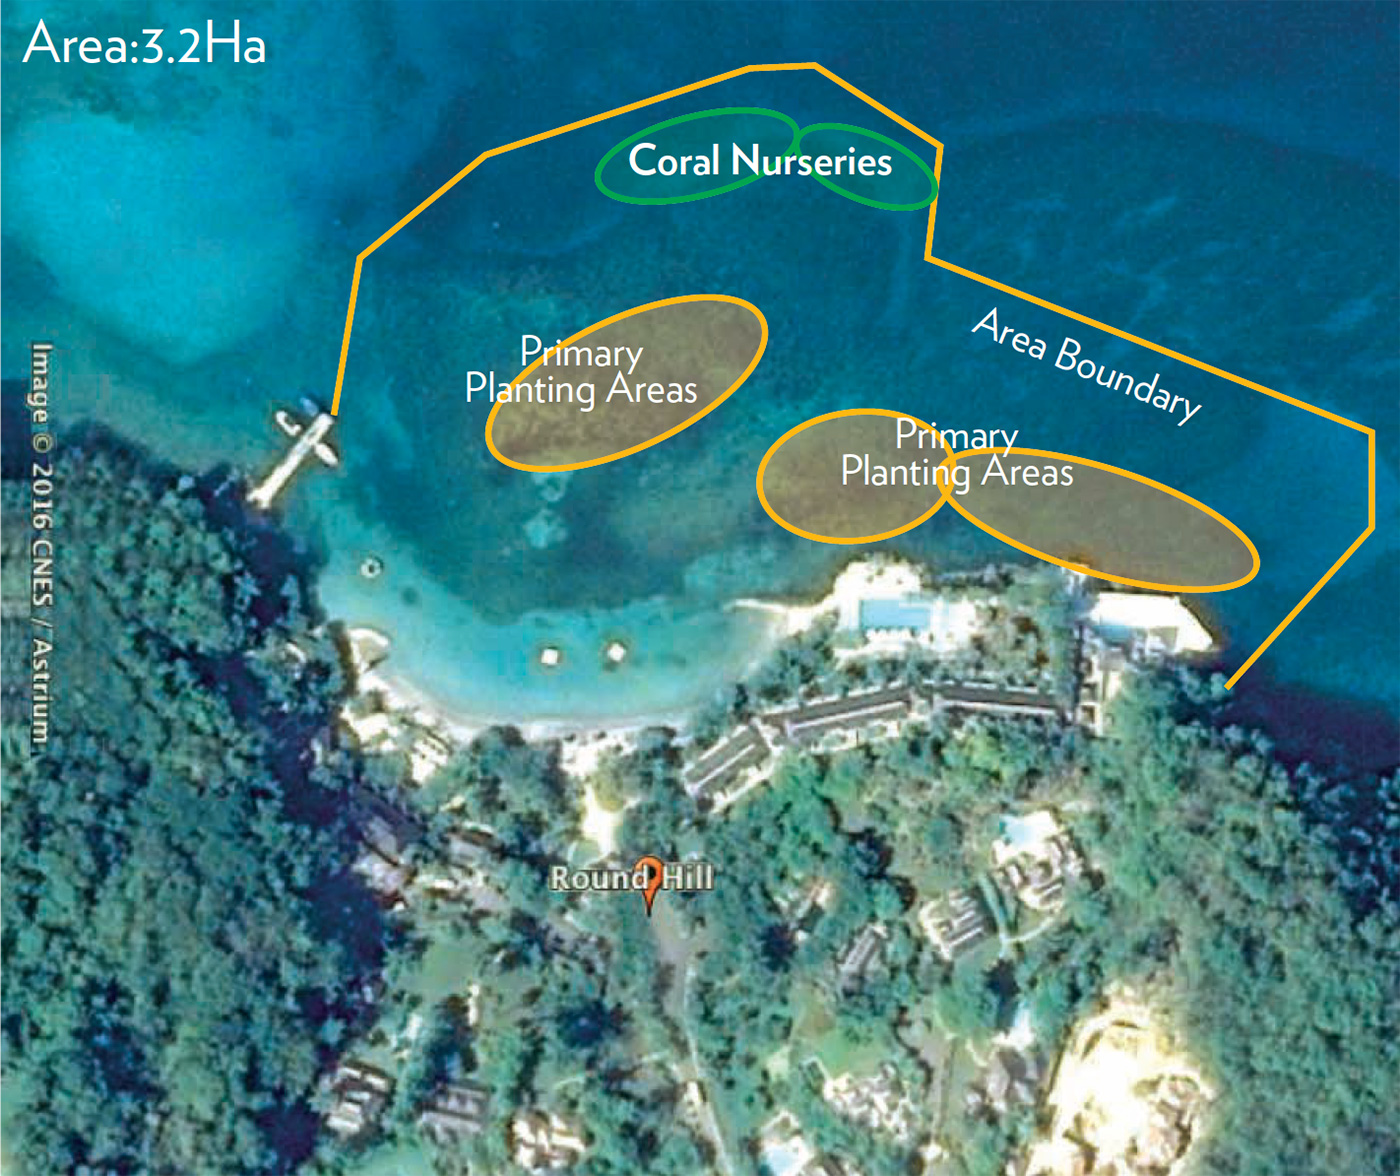 Round Hill Hotel's Local Reef Map